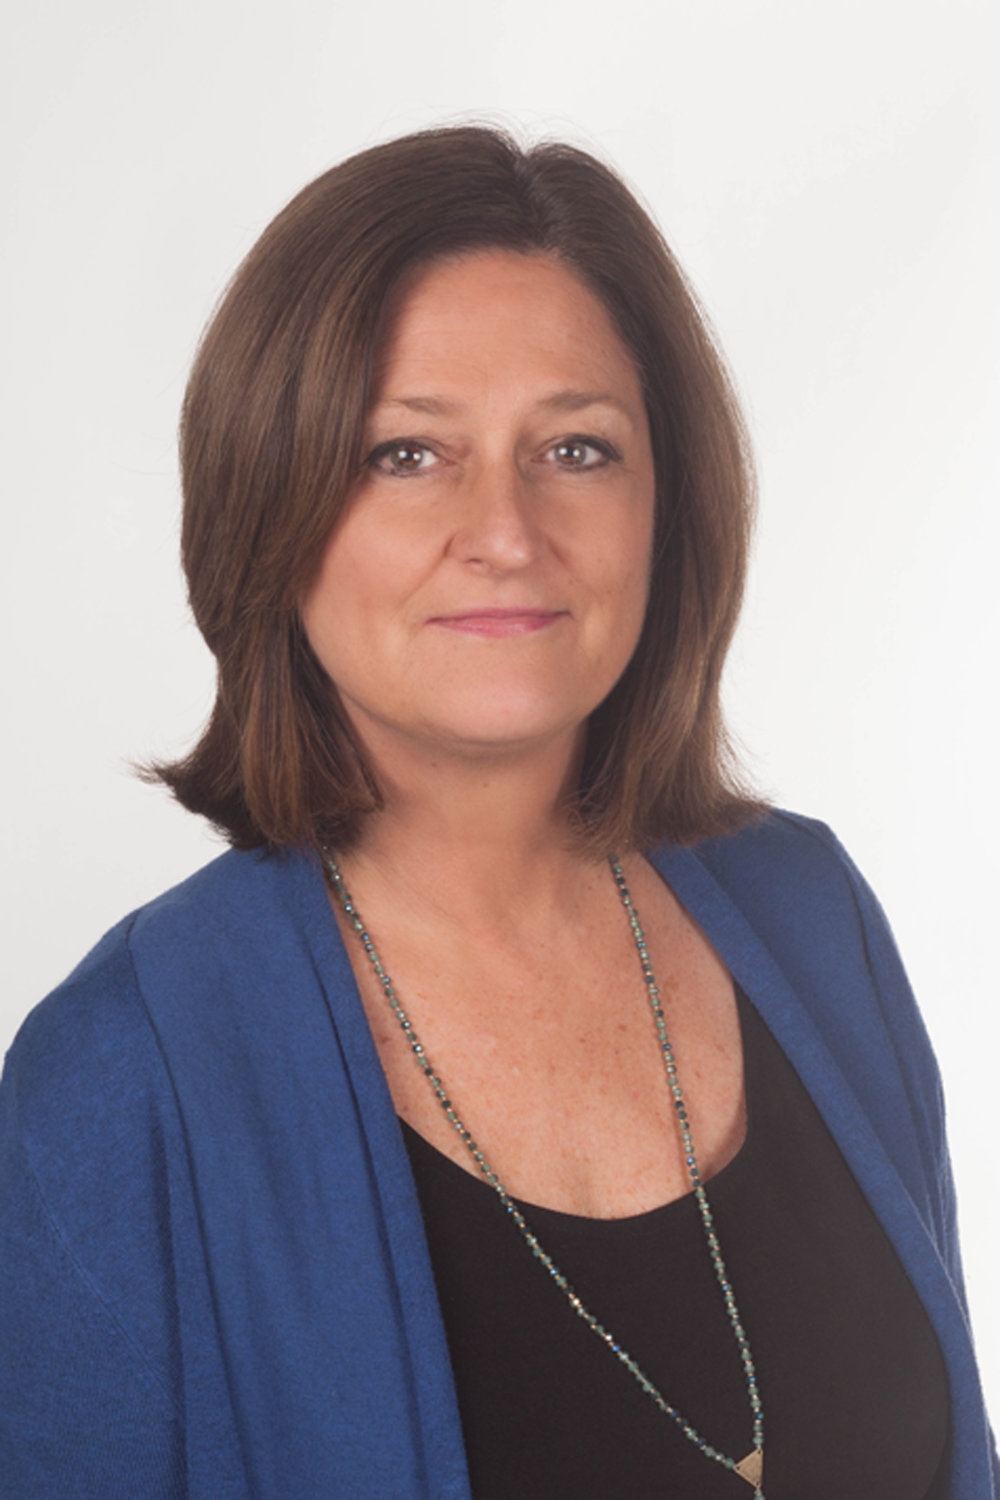 Wendy Rizzi, Receptionist - Ms. Rizzi joined PEM in 2015 as Receptionist. Prior to PEM, Ms. Rizzi was a Customer Relations Specialist and in Telesales/Business Development for Decleor USA in Darien for 4 years. Prior to working at Decleor USA she was Gallery Administrator at the Carriage Barn Arts Center in New Canaan managing the office and membership database. In addition, she held various administrative and receptionist positions on a part-time basis while raising her family. Wendy attended the University of Connecticut and the Art Institute of Florida.